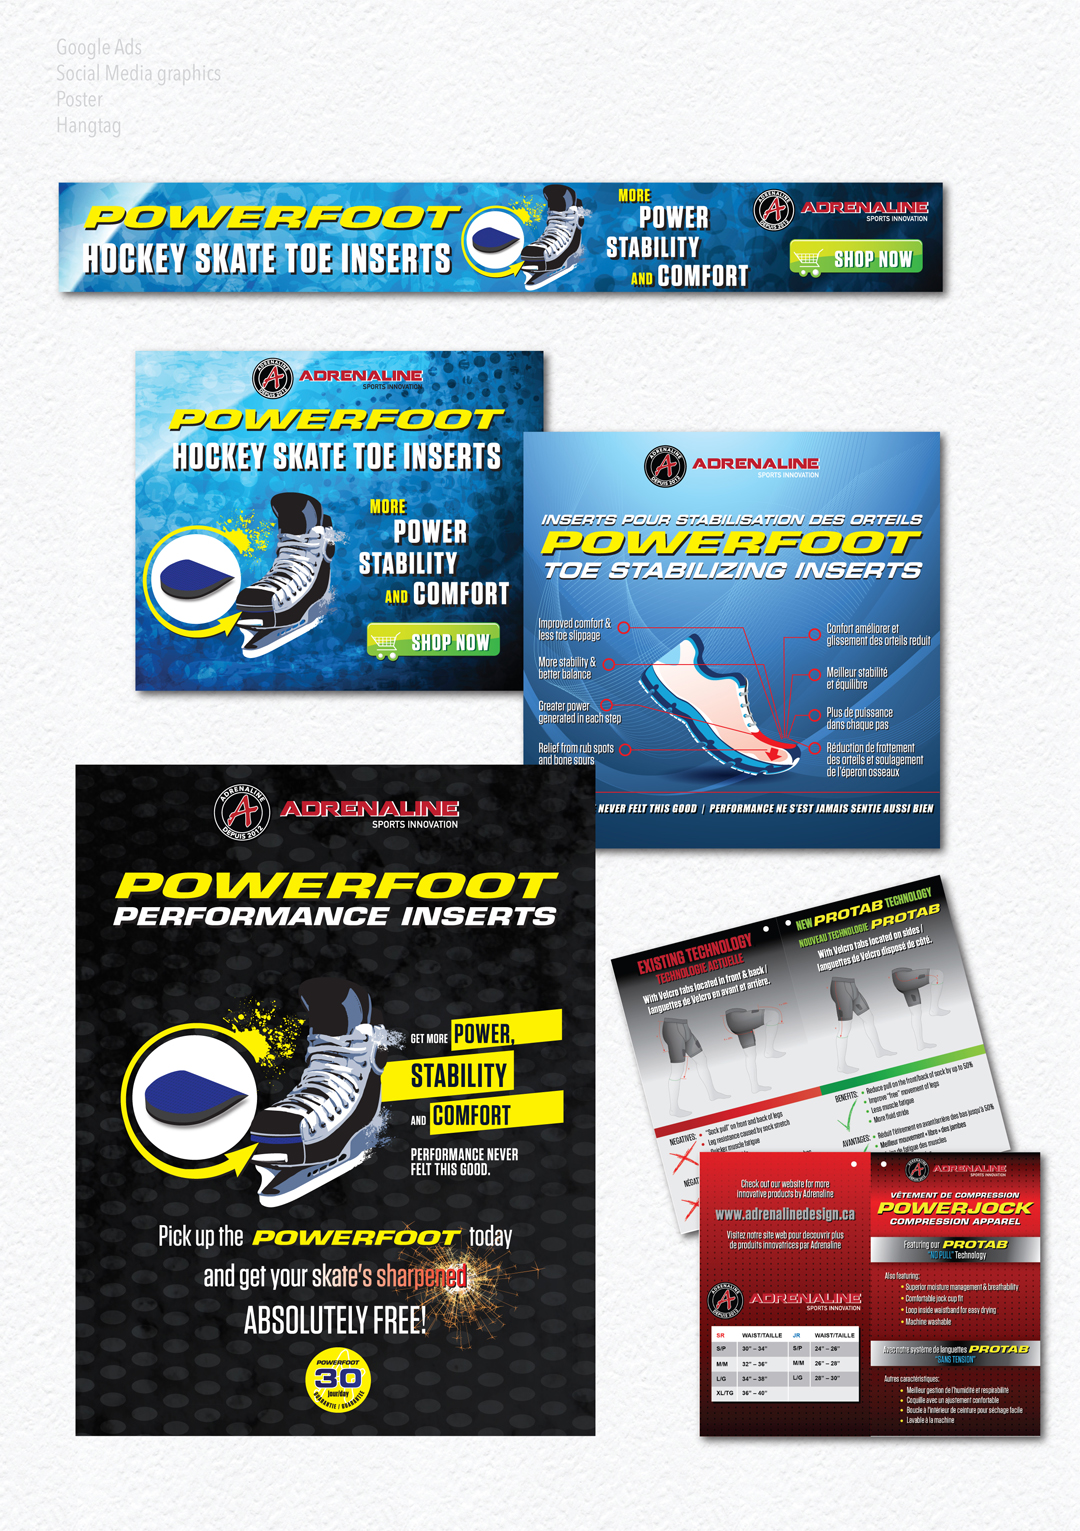 Powerfoot Brand_Web.jpg